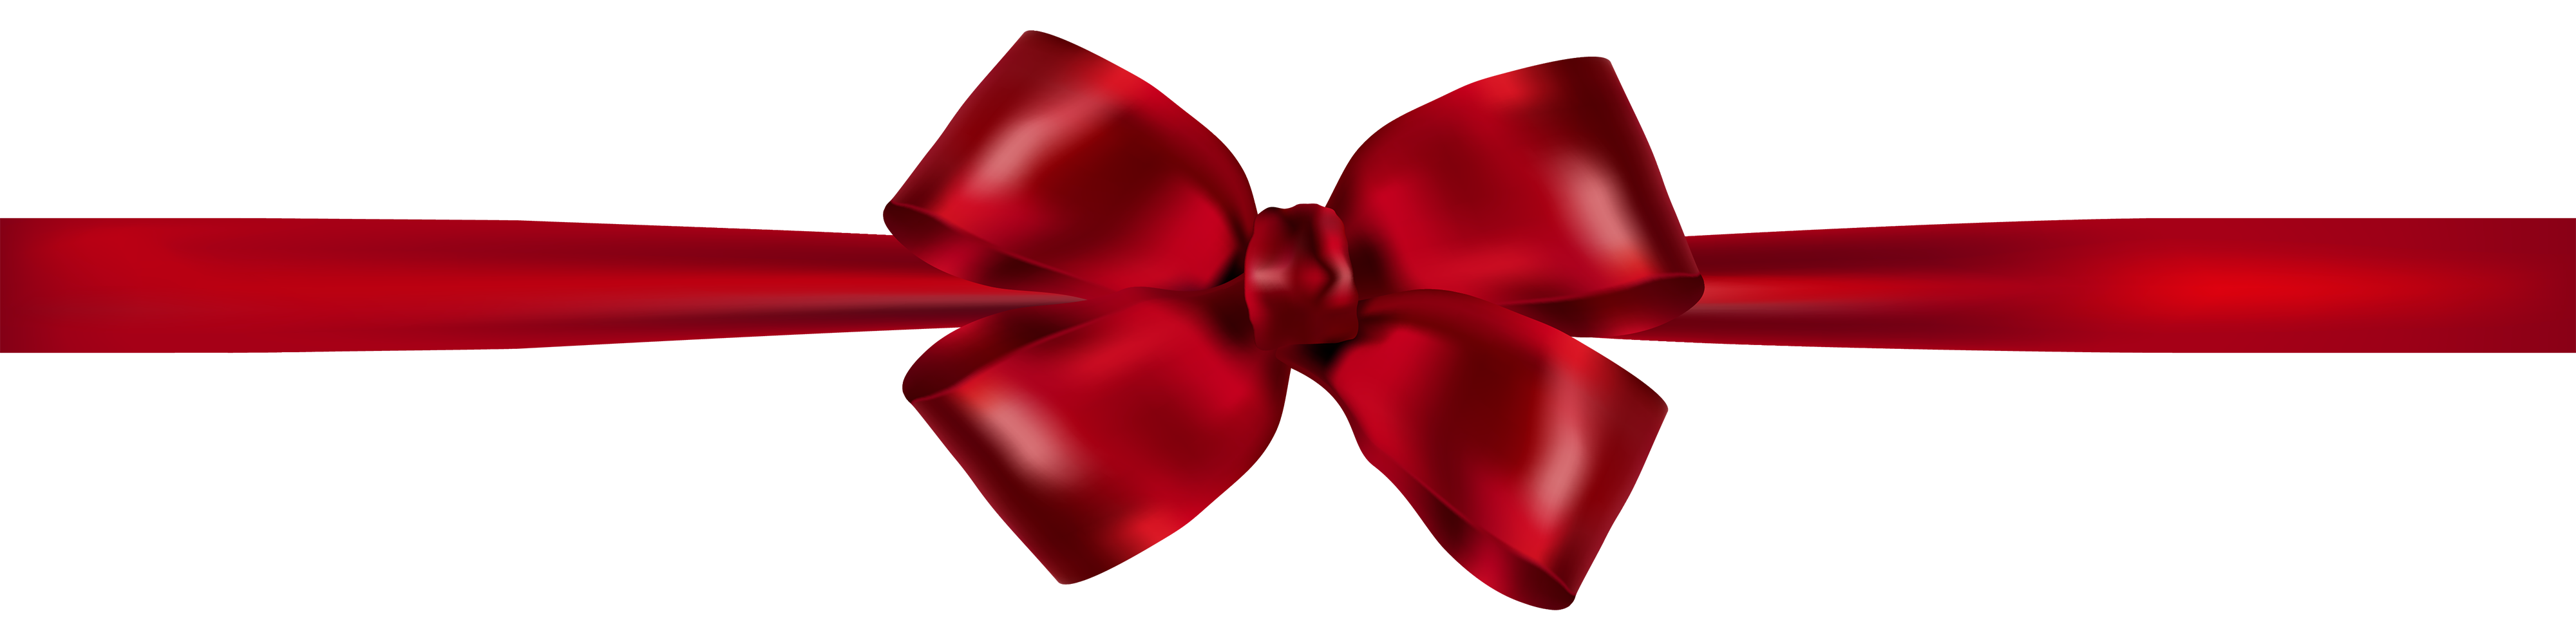 Ribbon clipart png black and white Beautiful Dark Red Ribbon PNG Clipart - Best WEB Clipart black and white